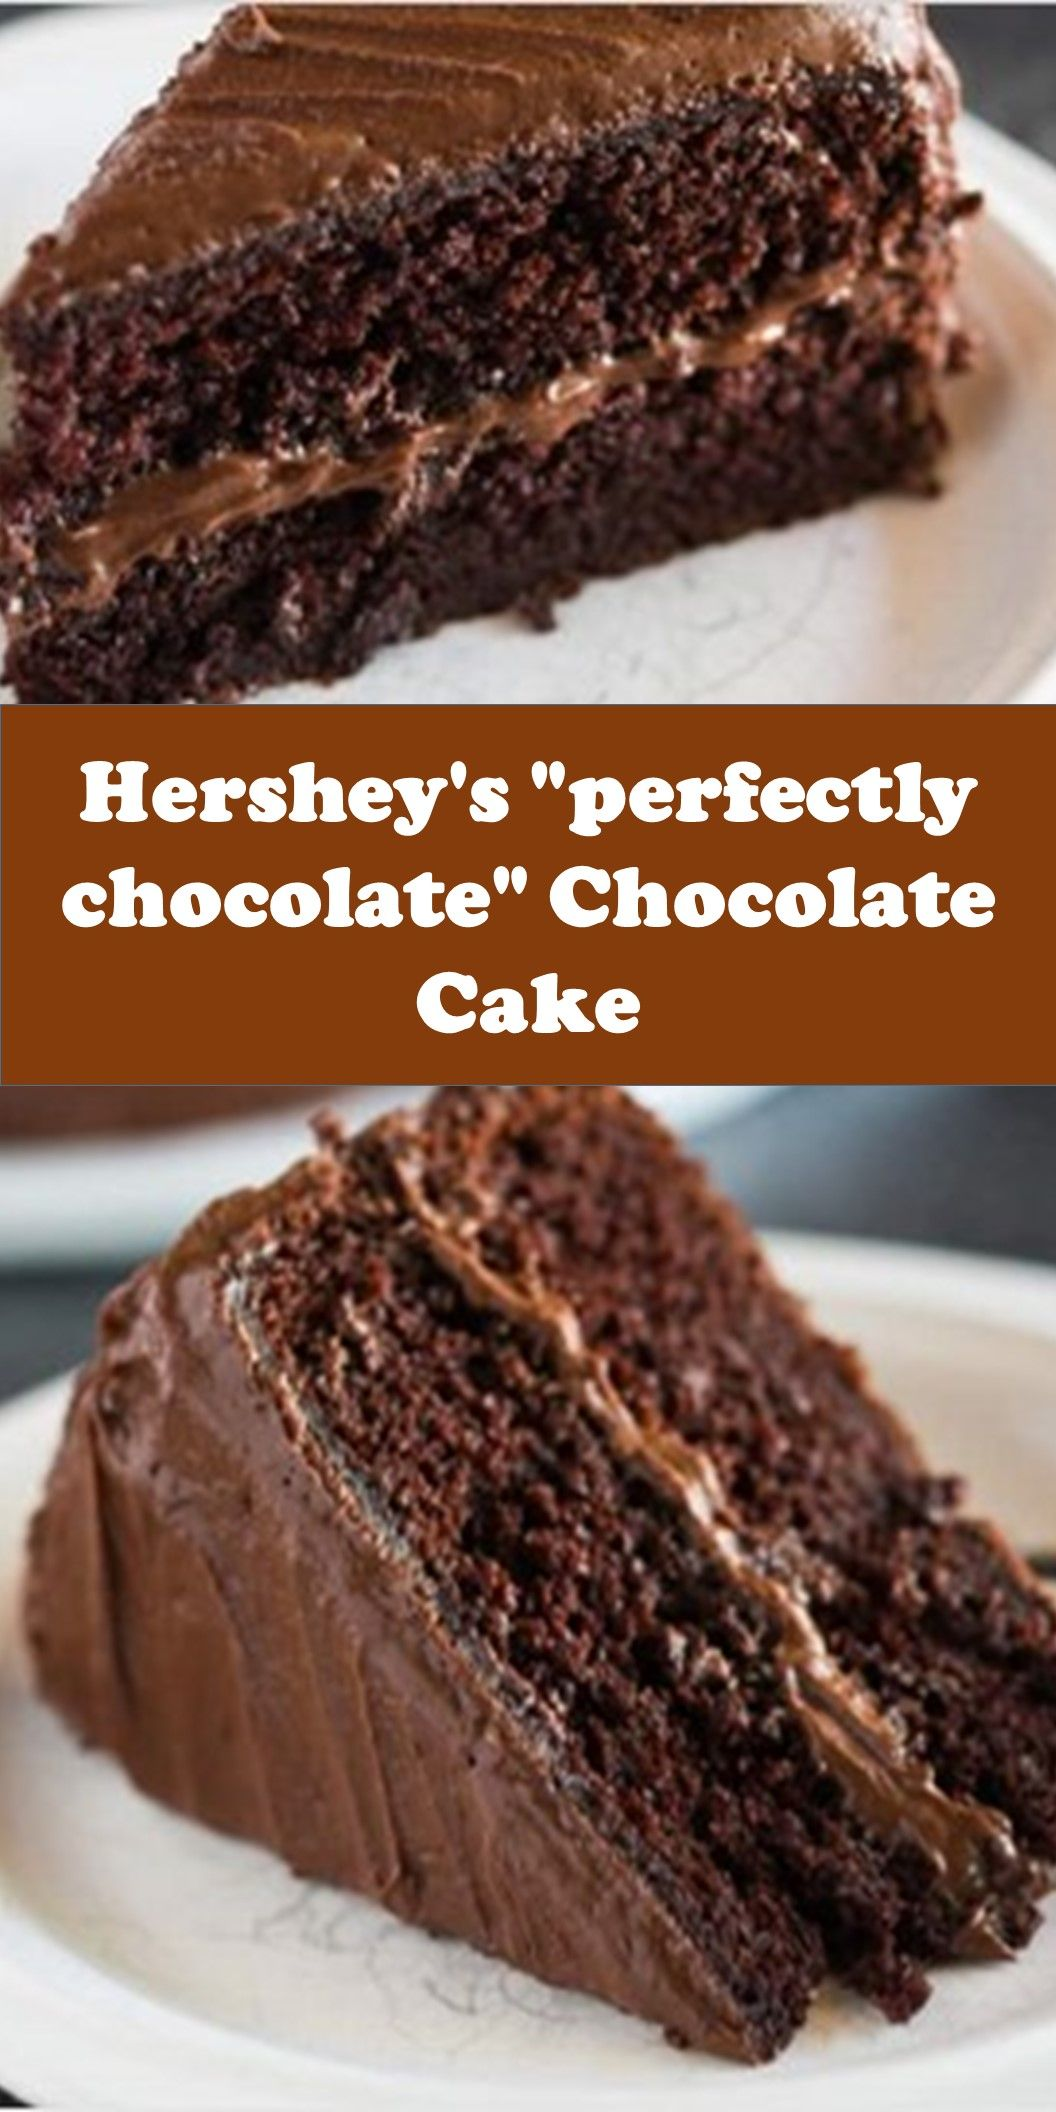 Hershey S Perfectly Chocolate Chocolate Cake In 2020 Cake Recipes Delicious Cake Recipes Sweets Recipes